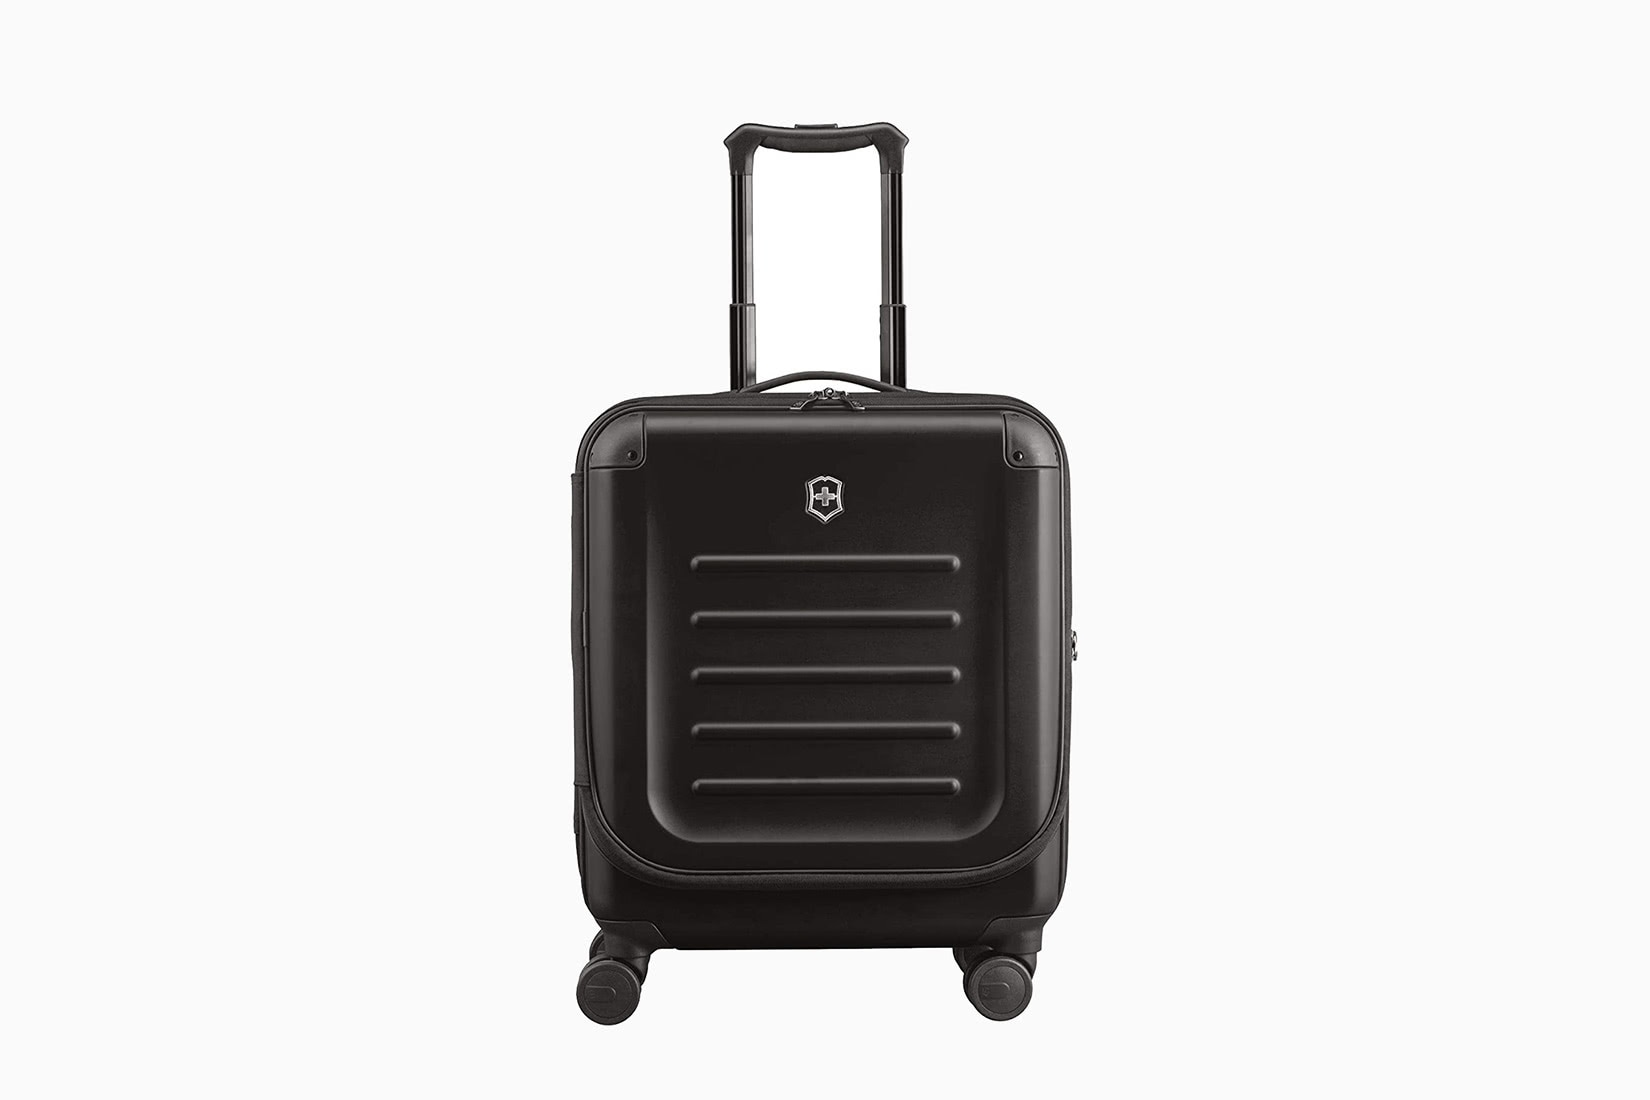 best carry-on luggage travel laptop victorinox spectra - Luxe Digital